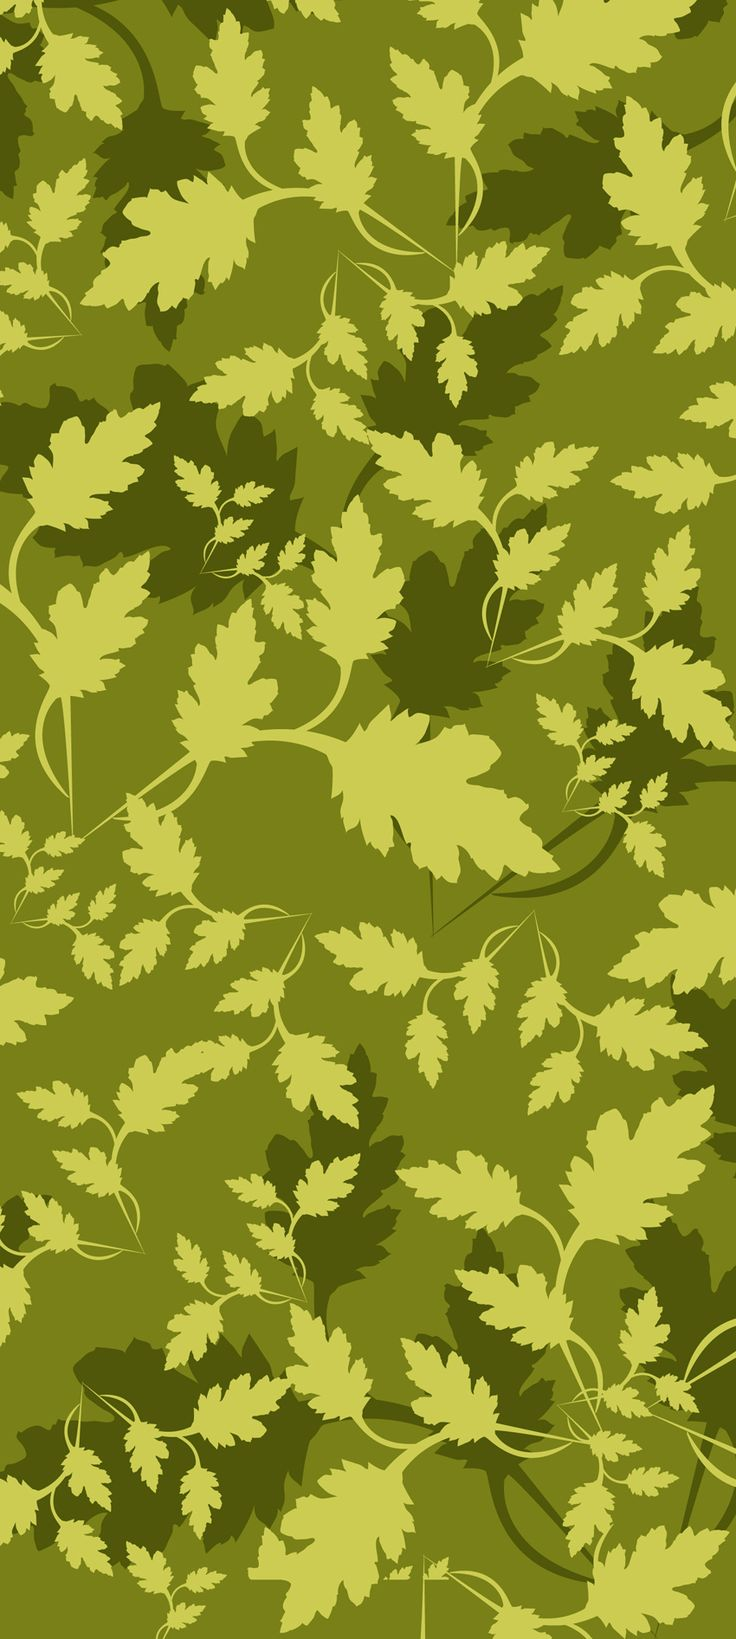 36 best camo patterns images on pinterest camo patterns leaves camouflage pattern amipublicfo Choice Image